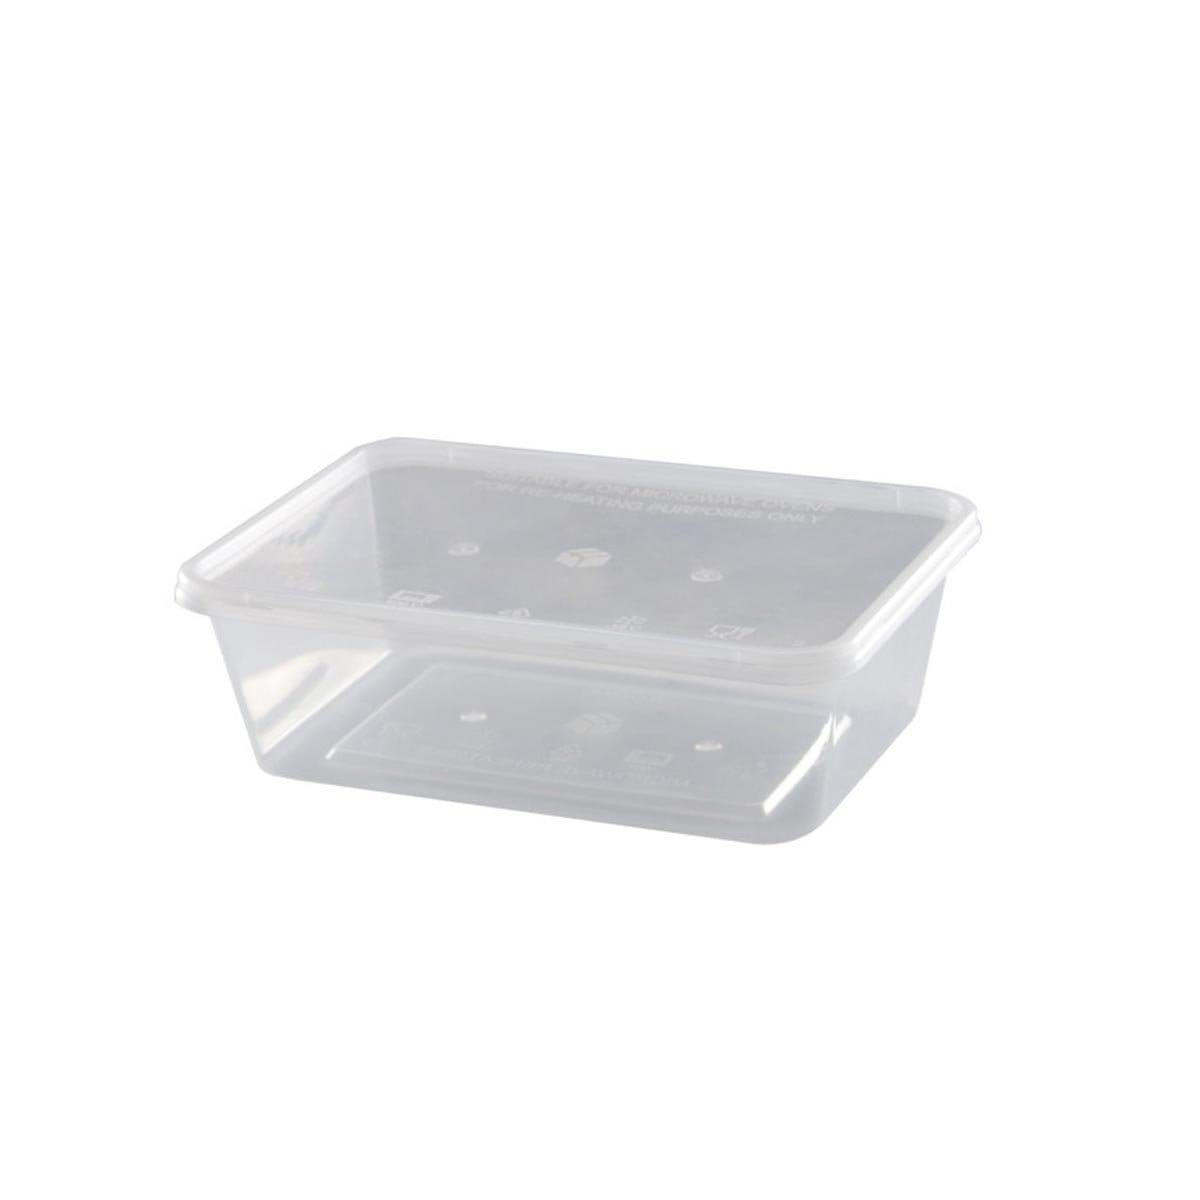 Leaf Rectangular Plastic Food Container 750ml 1ppcs LR750